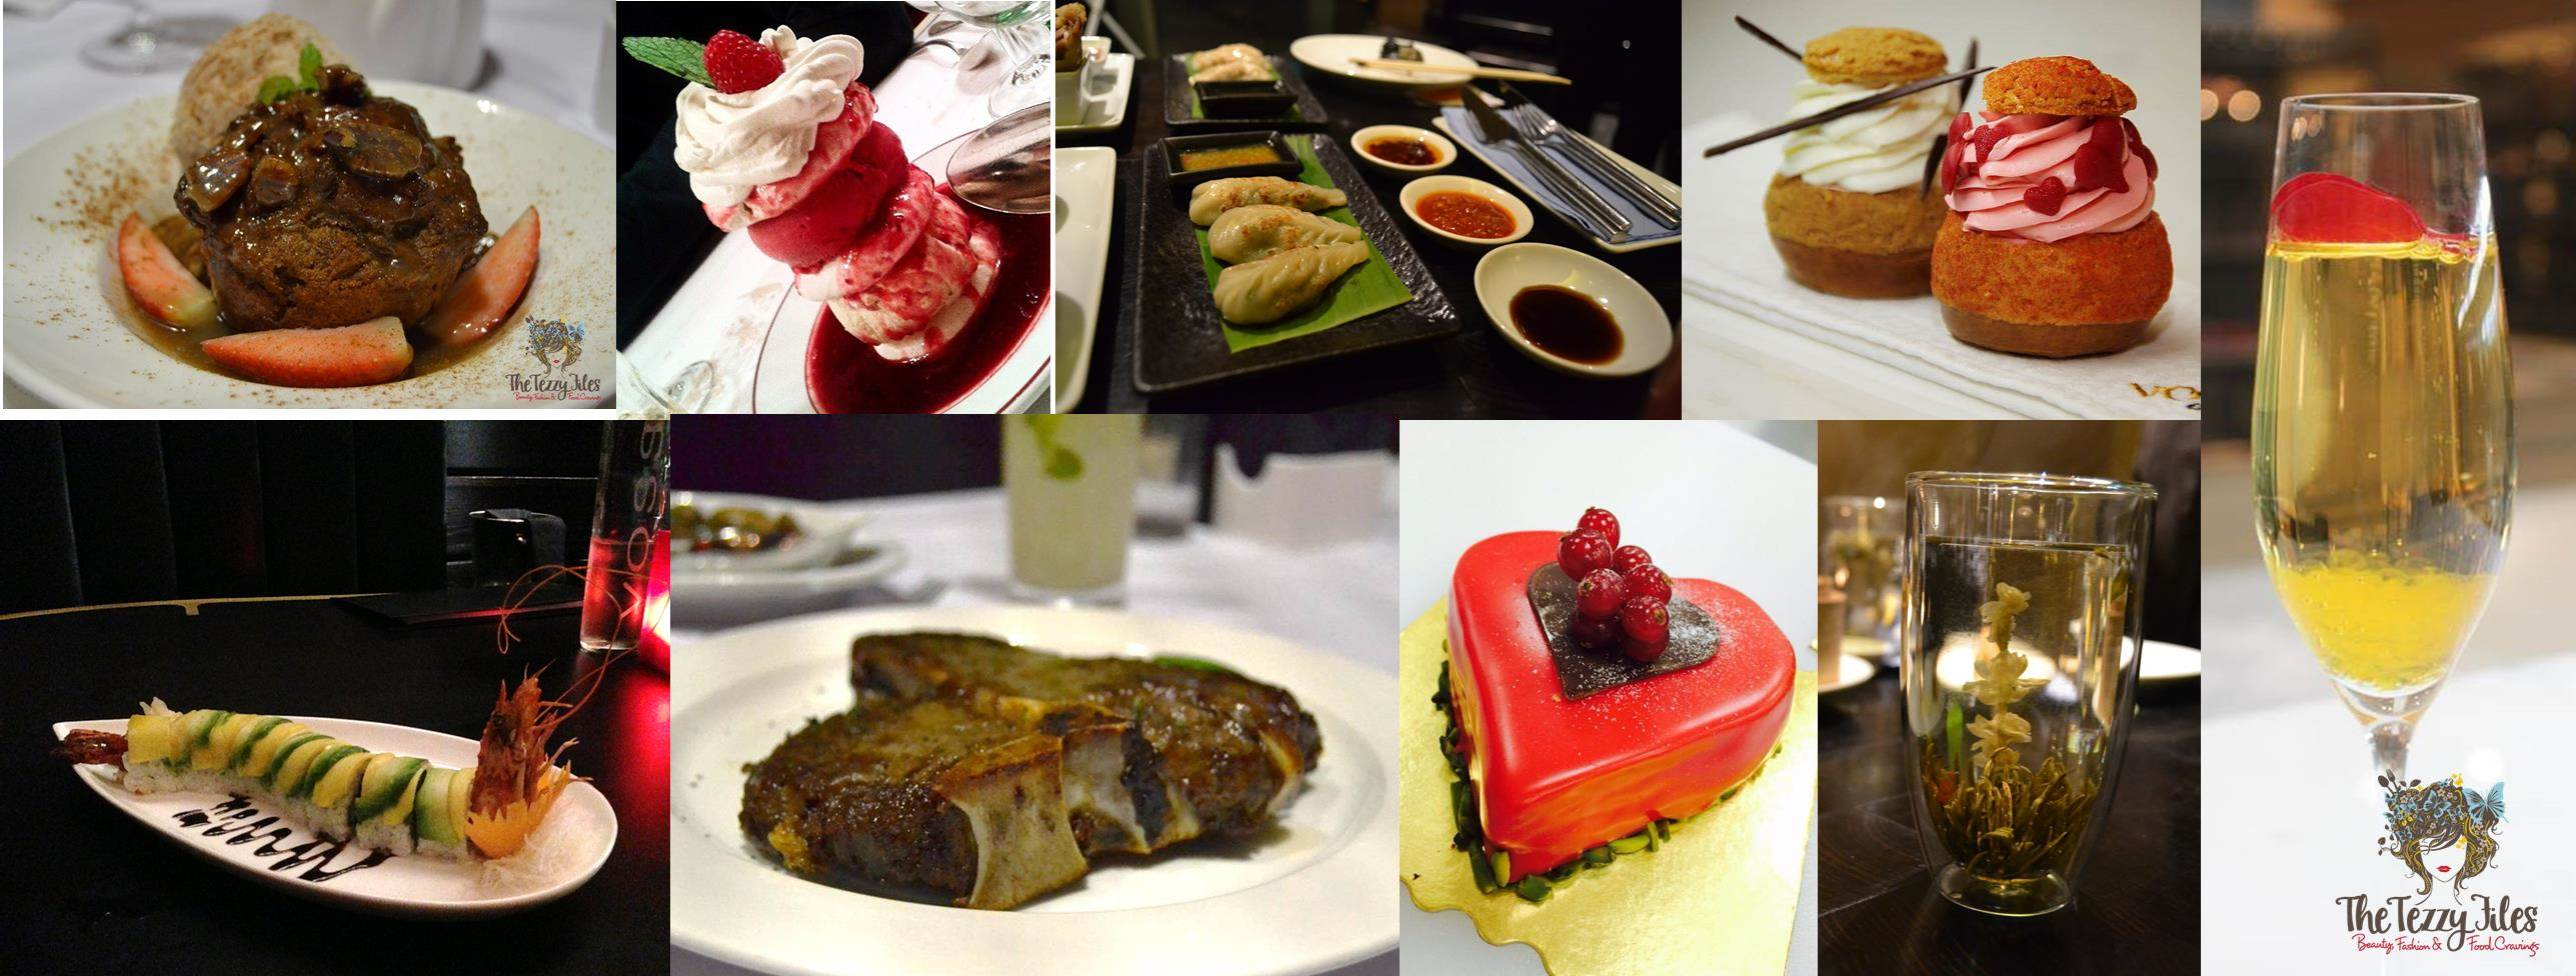 4 Great Dubai Dining Options For Your Valentine The